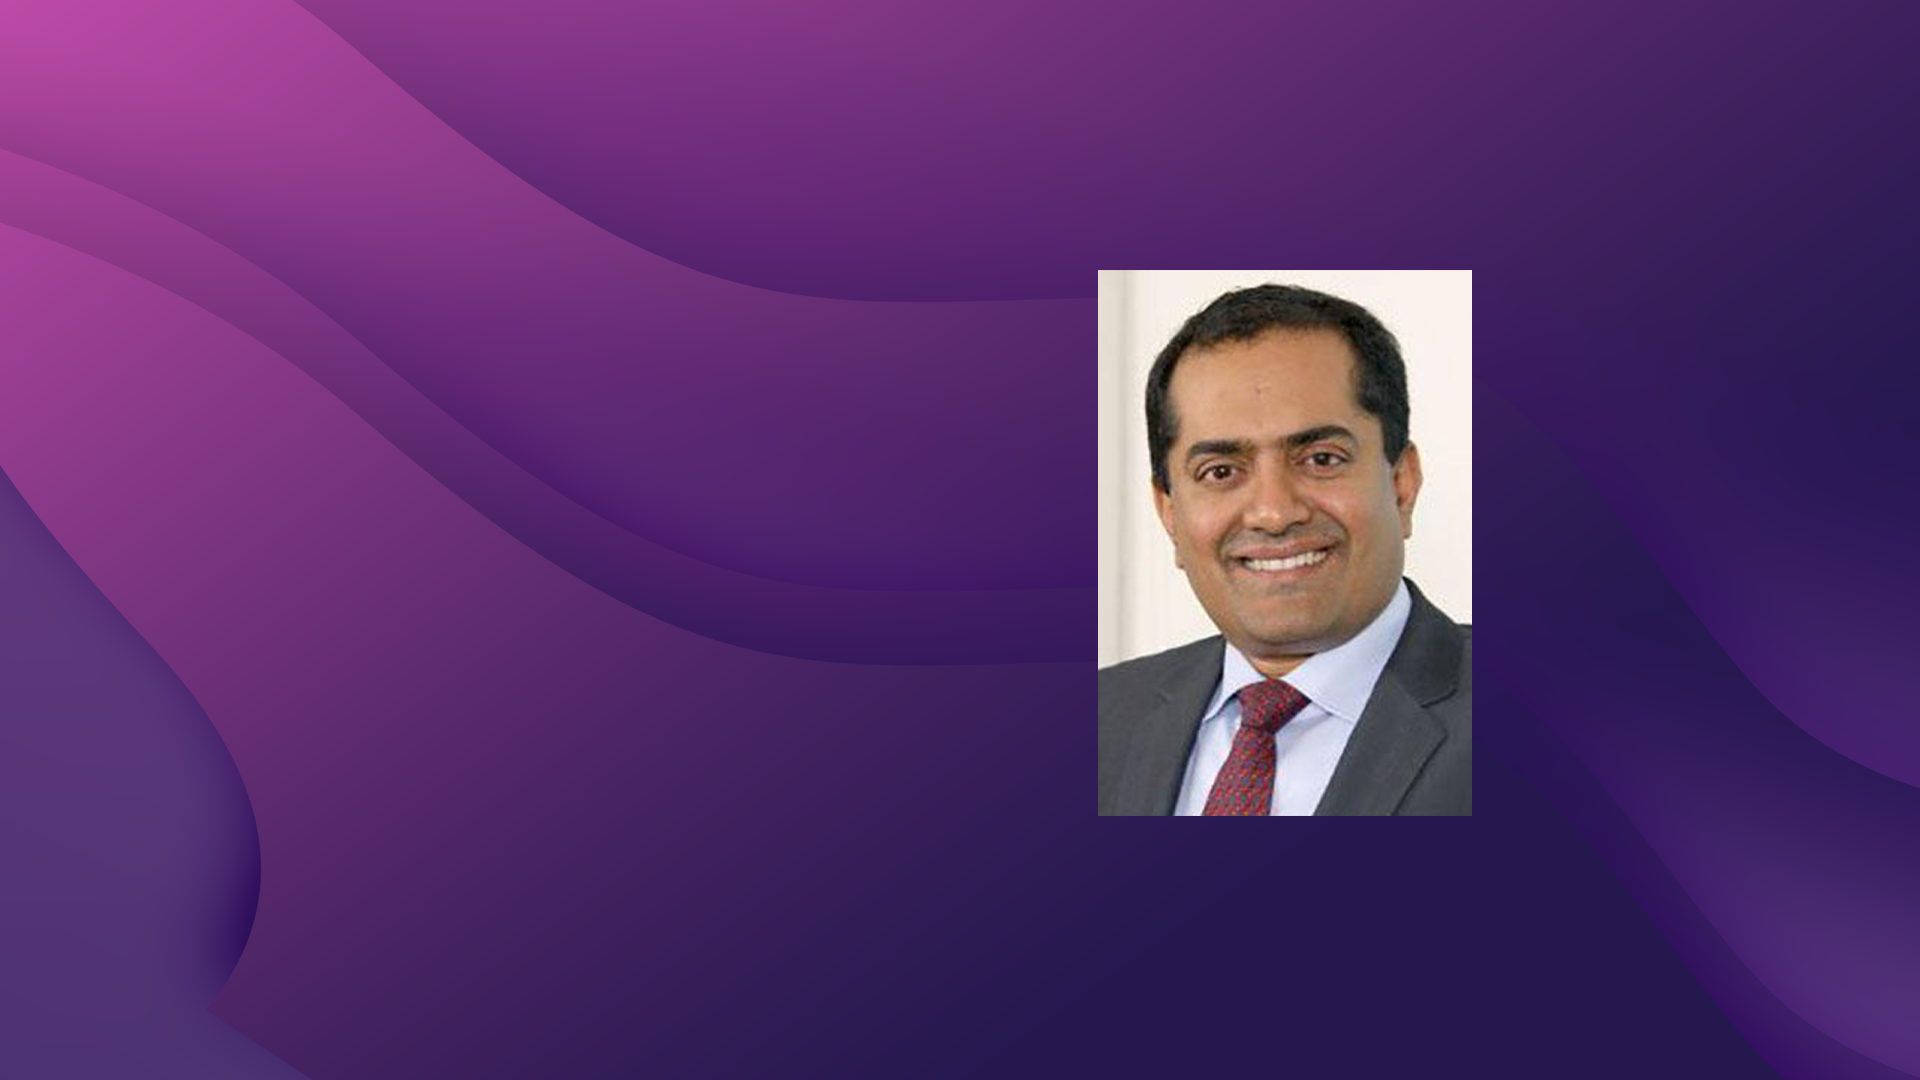 1100: Mphasis – How Can DevOps Help Financial Services Keep Pace?